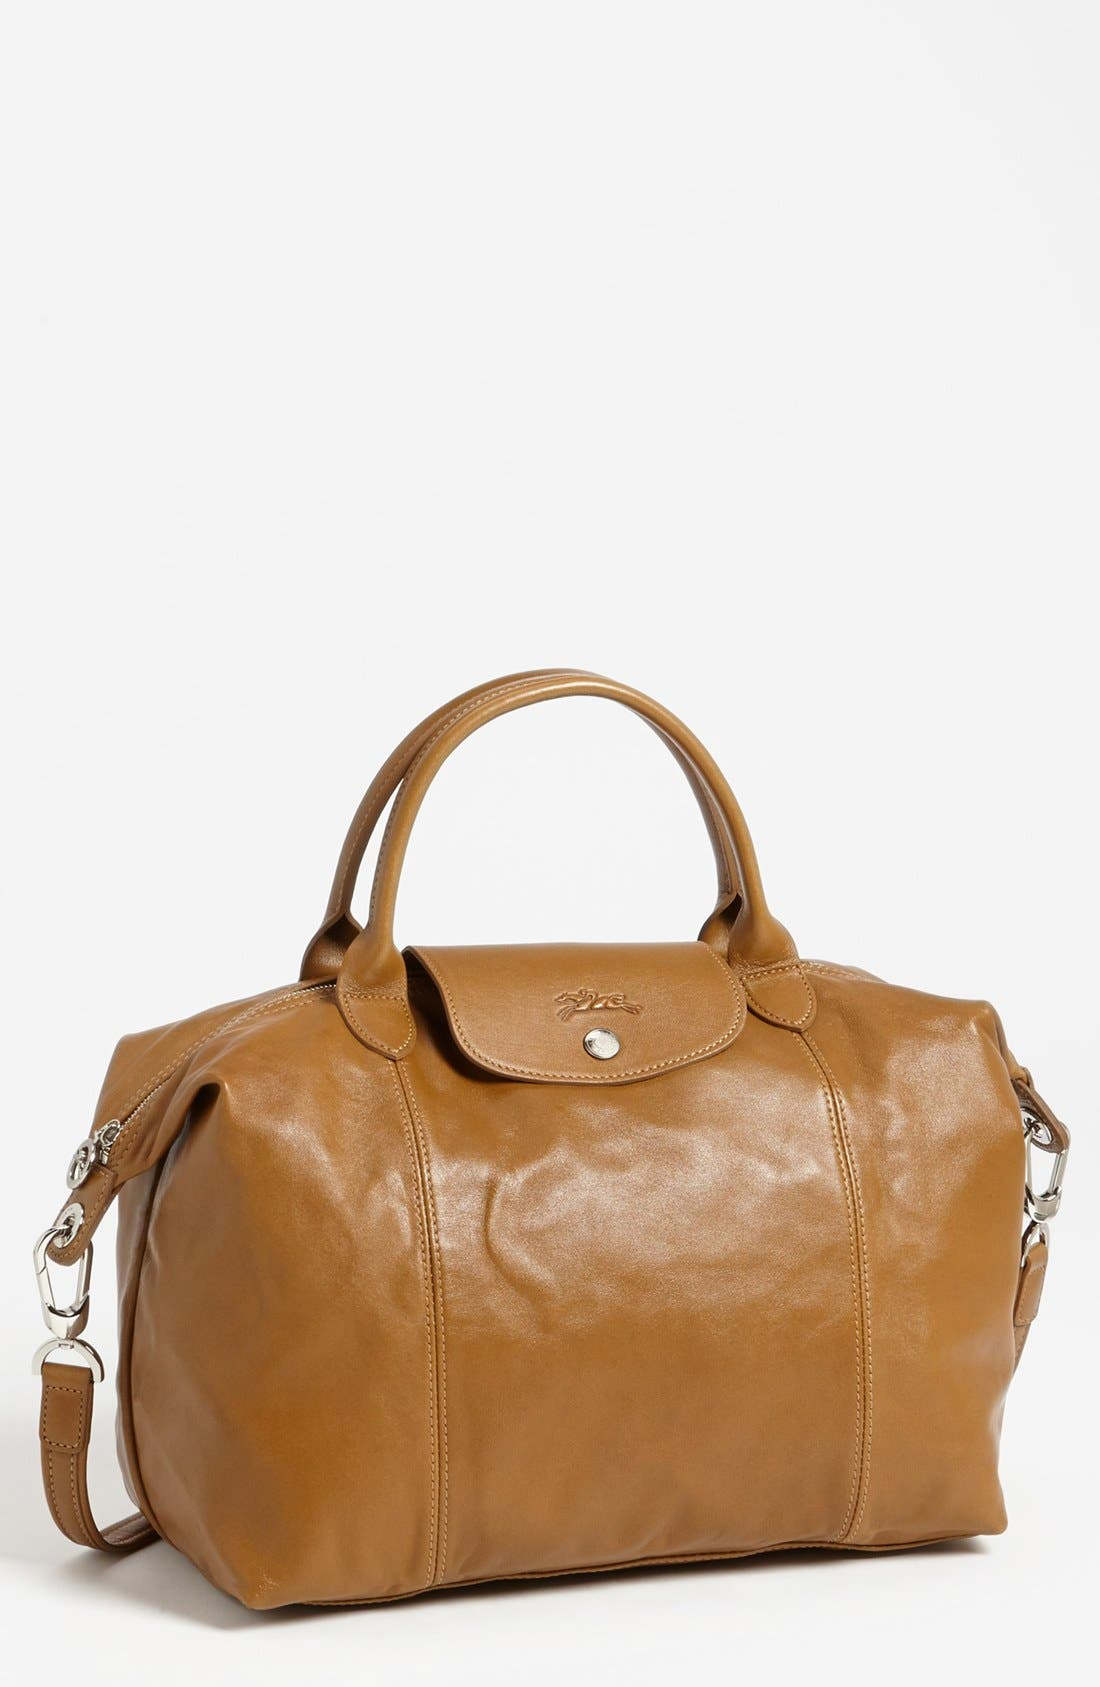 Medium 'Le Pliage Cuir' Leather Top Handle Tote,                             Main thumbnail 10, color,